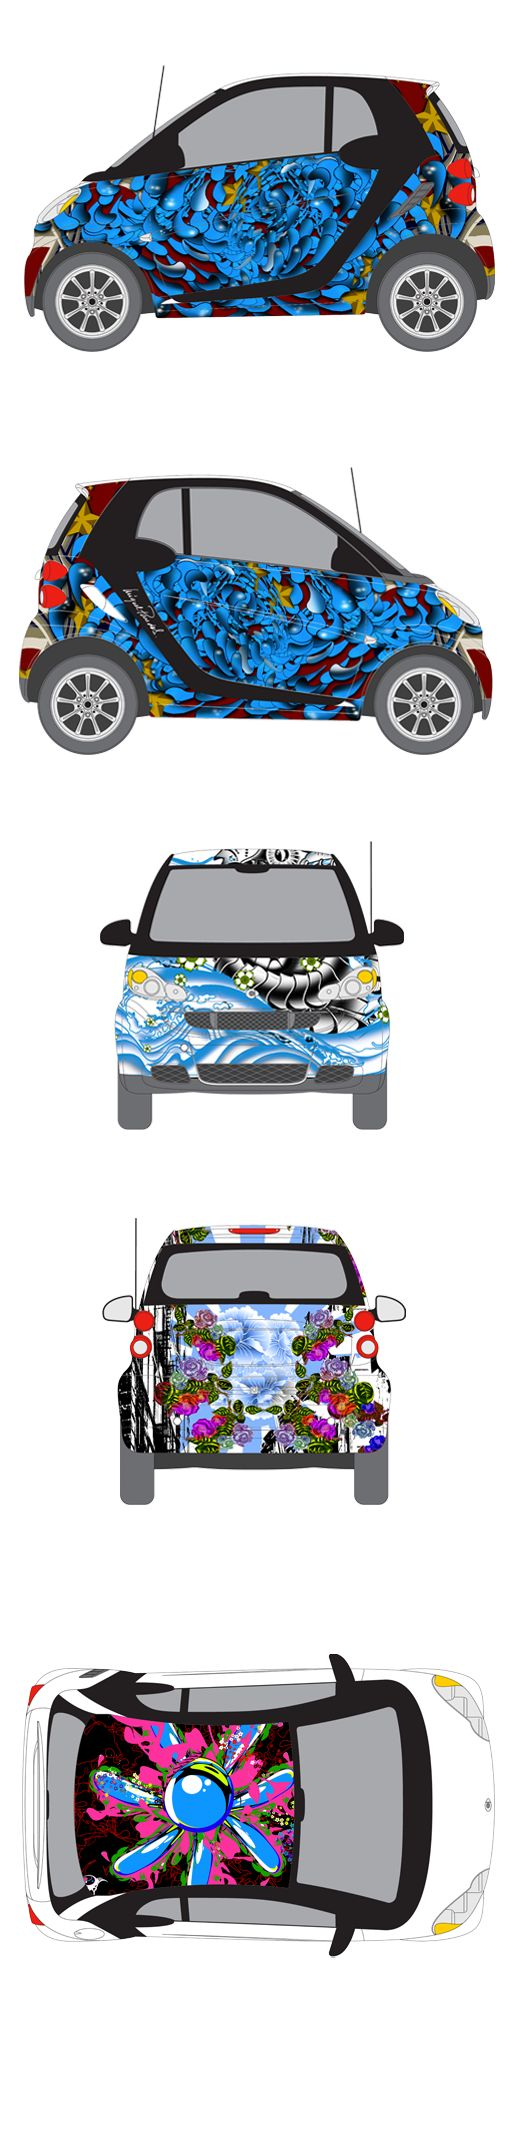 Smart car sticker designs - This Is Urban Cyanea By Miguel Paredes Did You Know That Smart Stands For Swatch